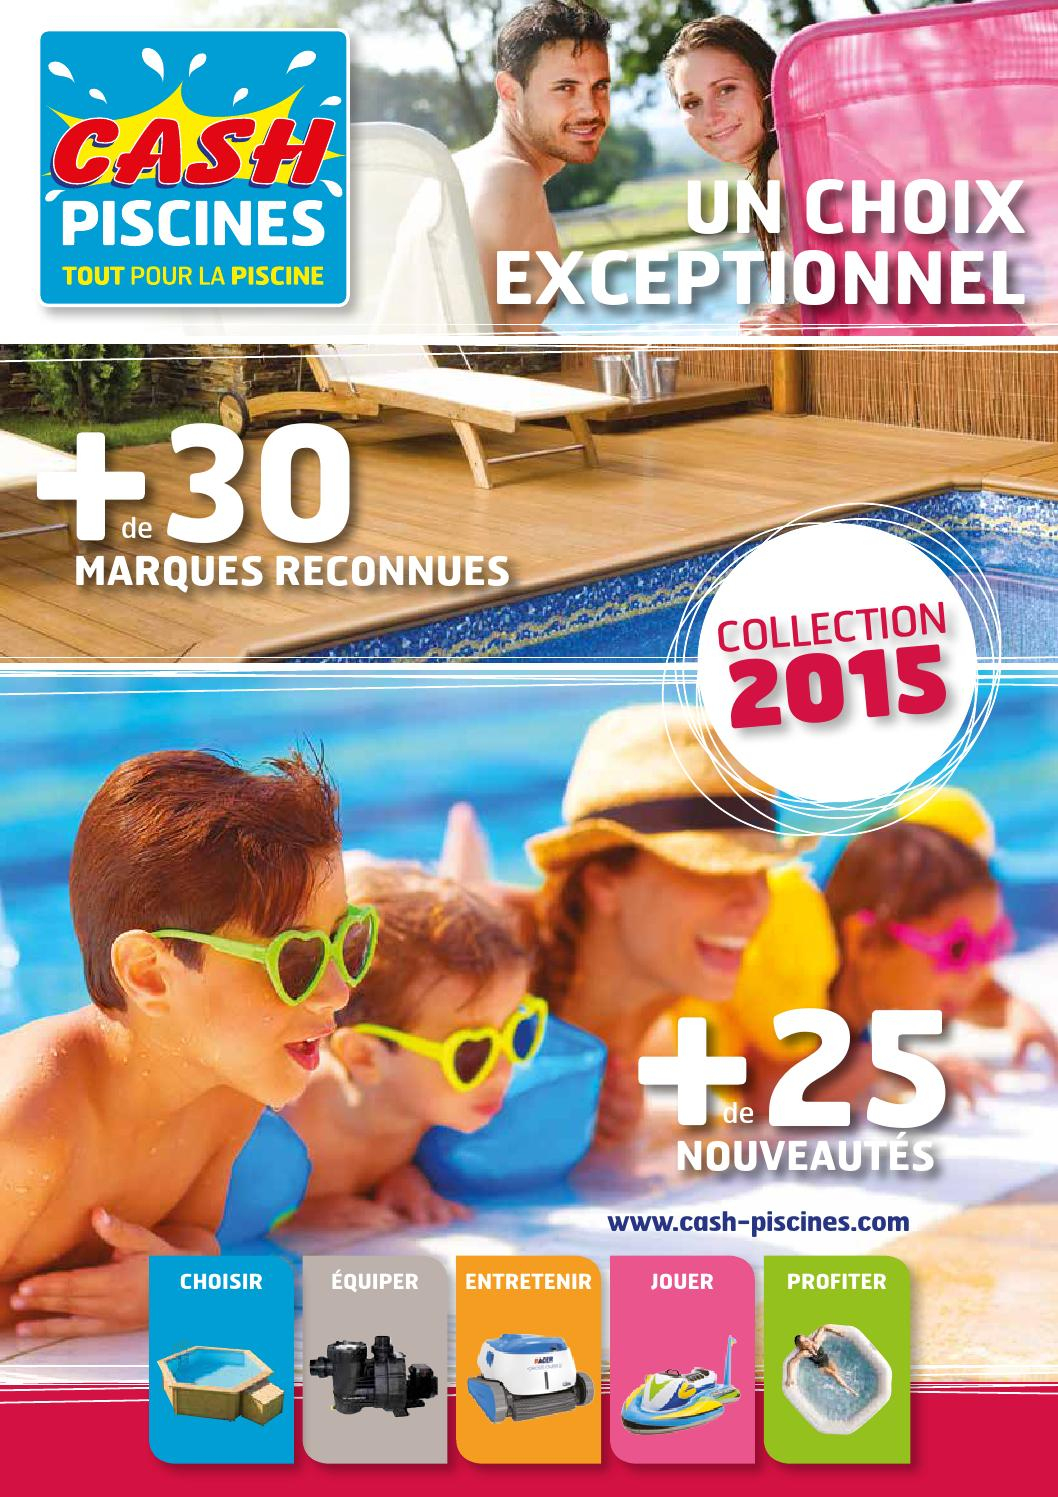 Catalogue Cash Piscines 2015 By Octave Octave - Issuu intérieur Cash Piscine Agen